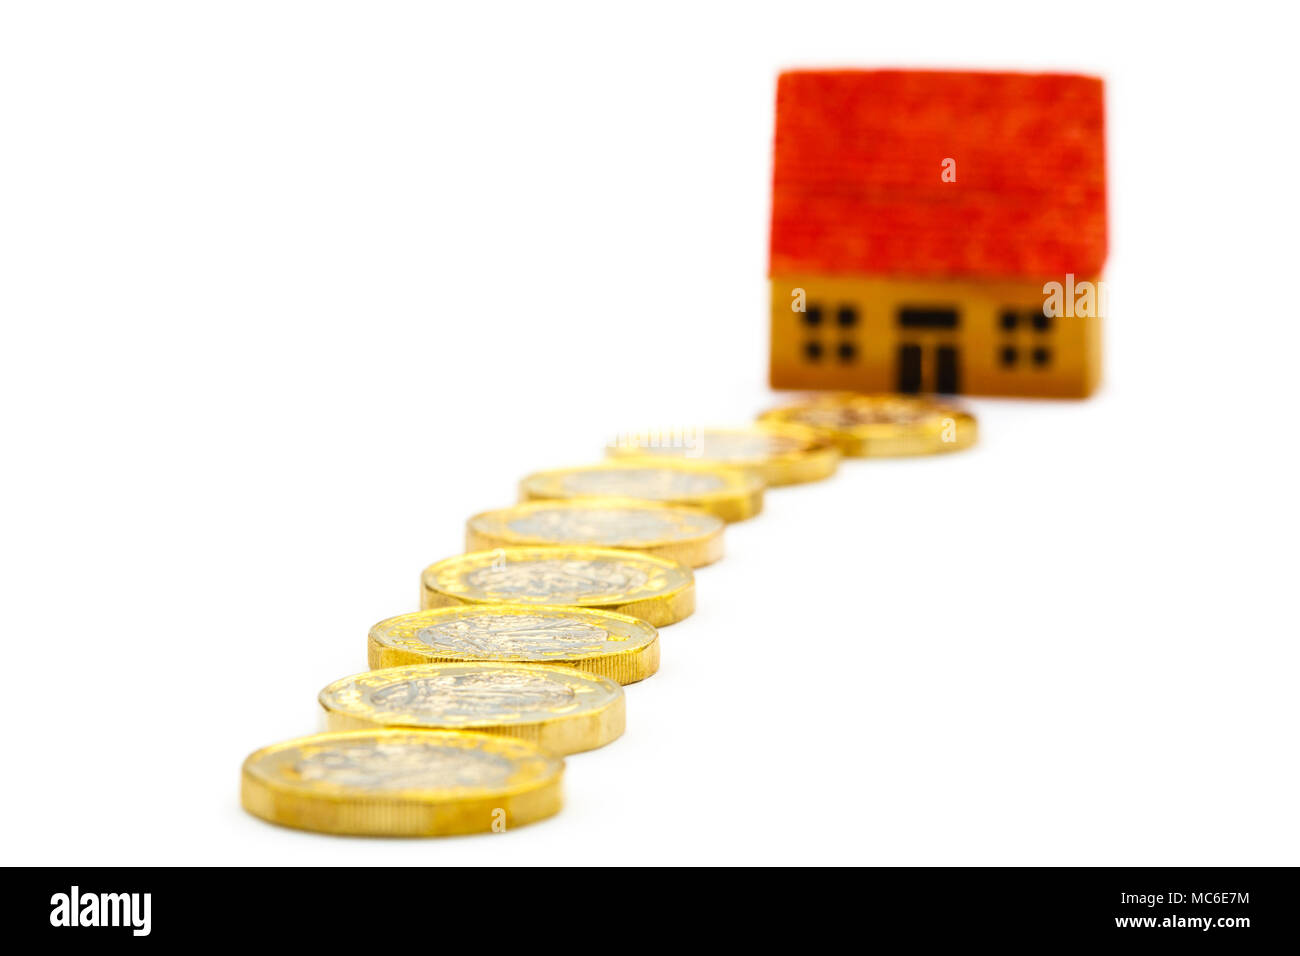 Path of money new pound £ coins pounds GBP leading to a house to illustrate property prices values and saving for a home ownership concept. UK Britain - Stock Image